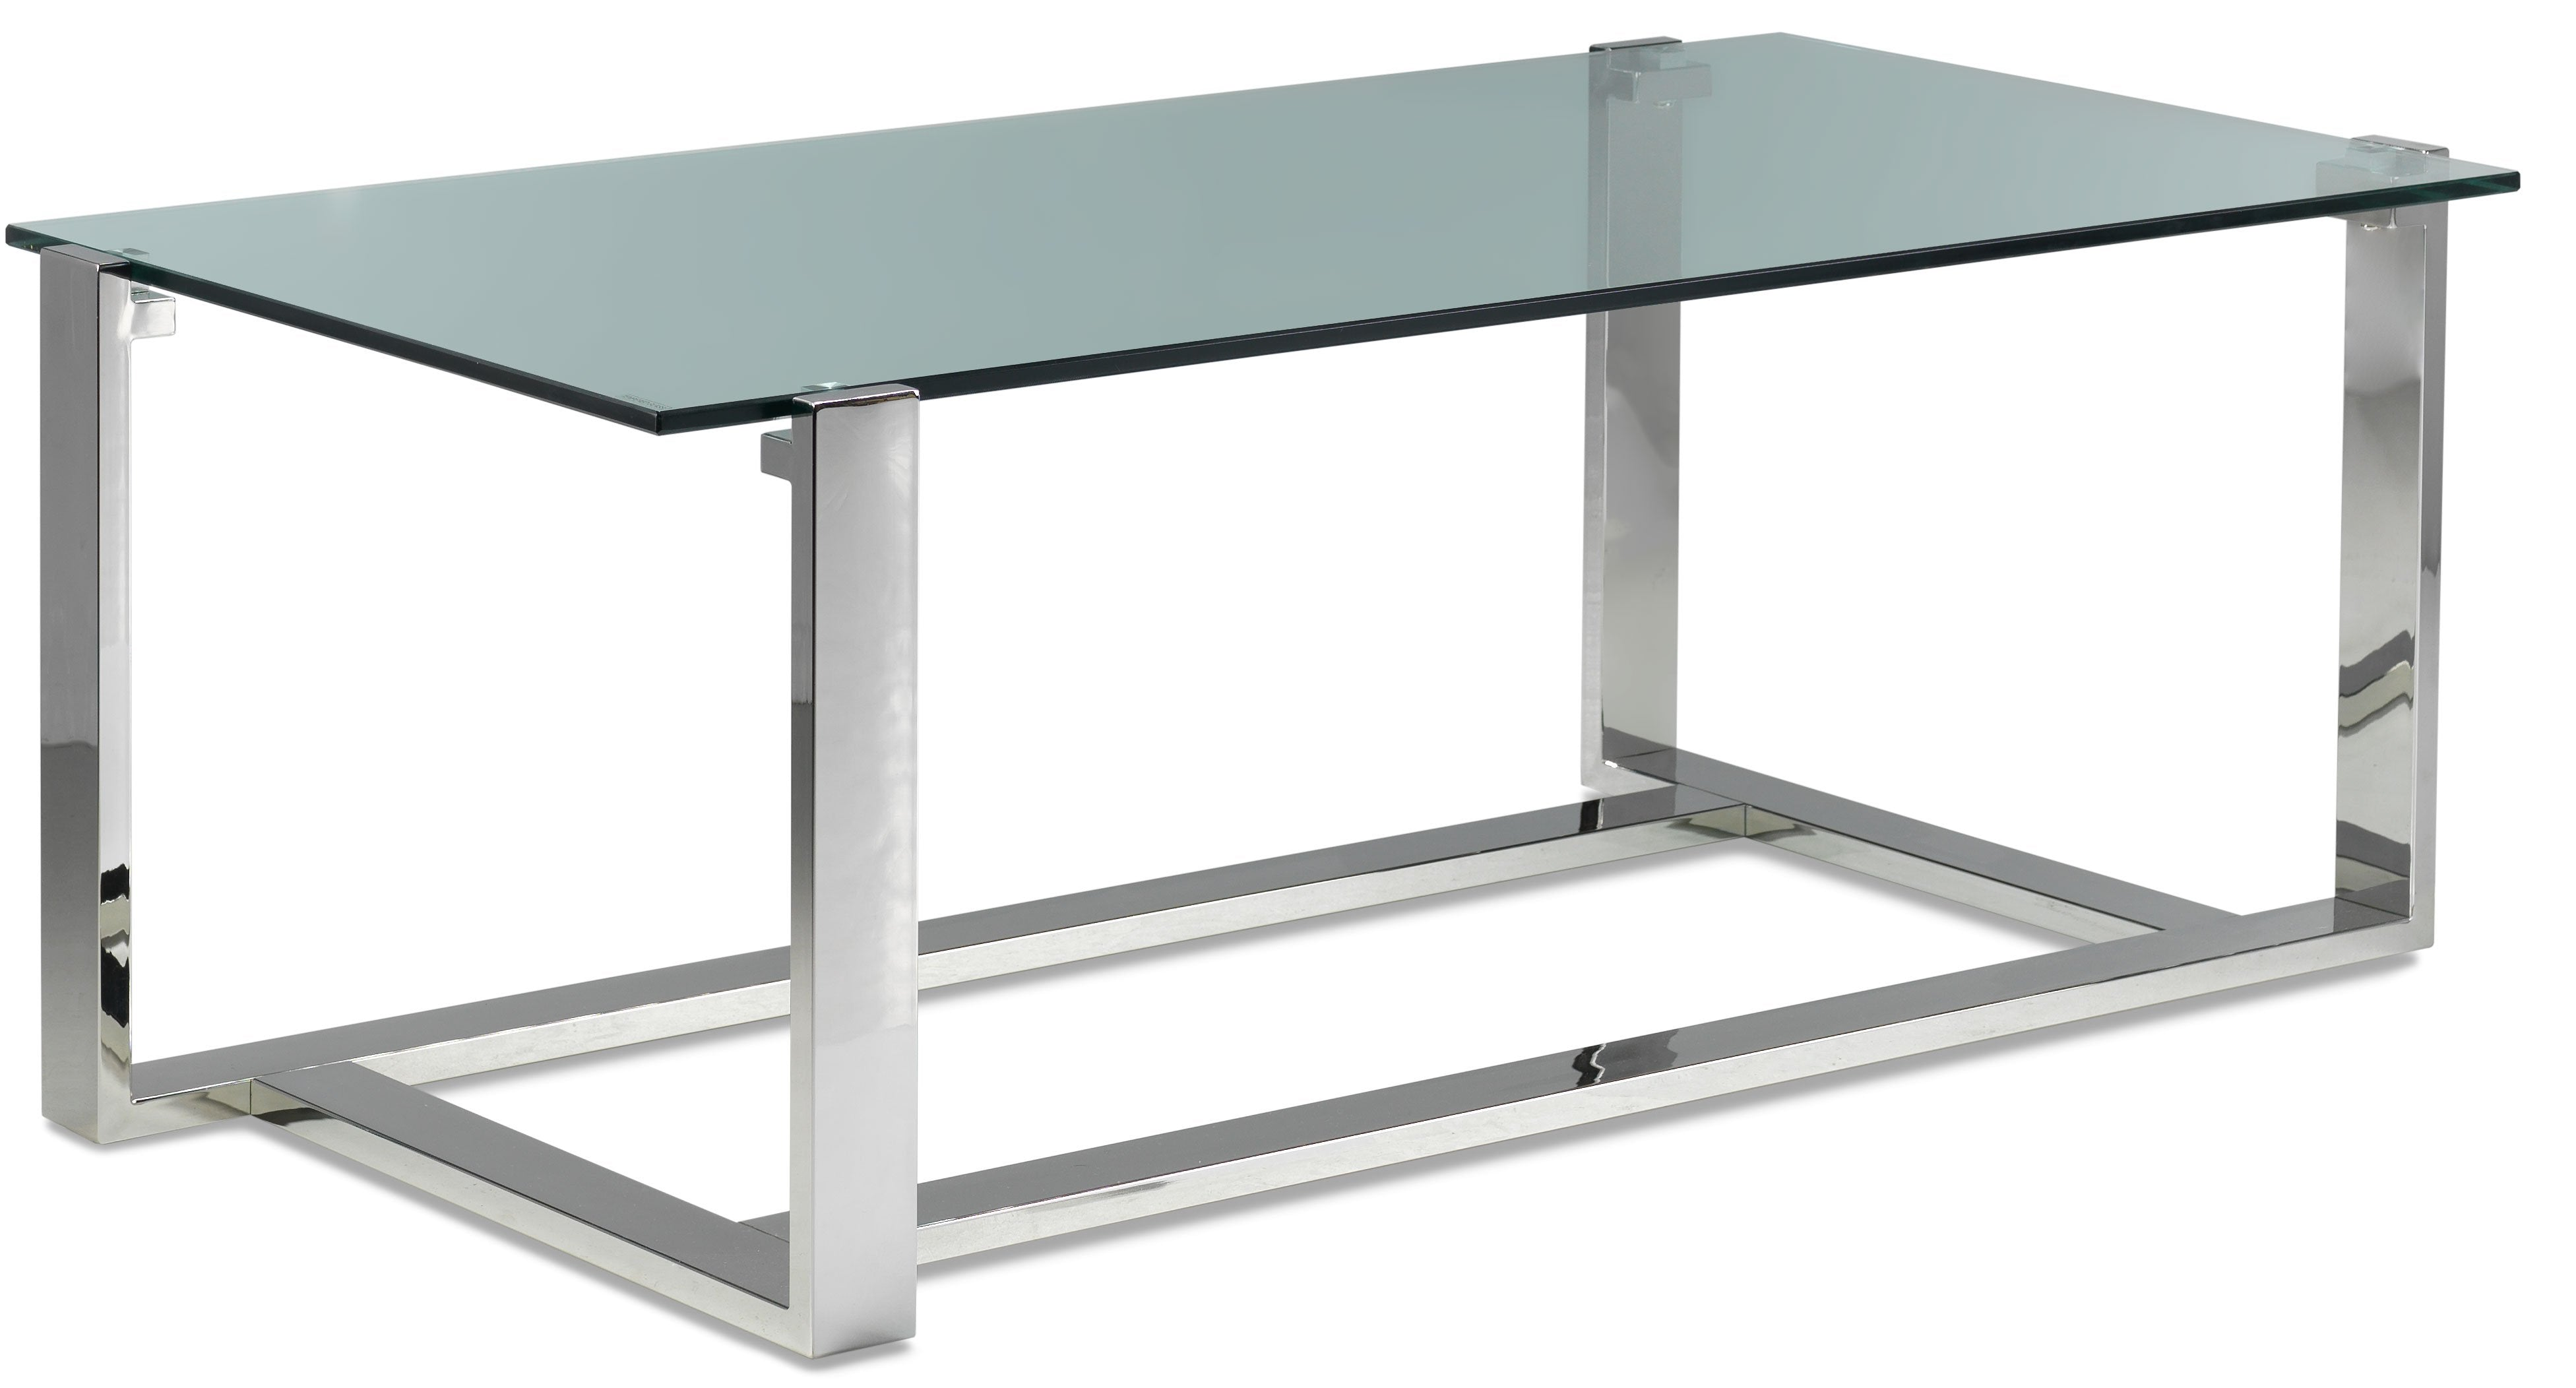 Sidney Coffee Table Stainless Steel And Glass Leon S